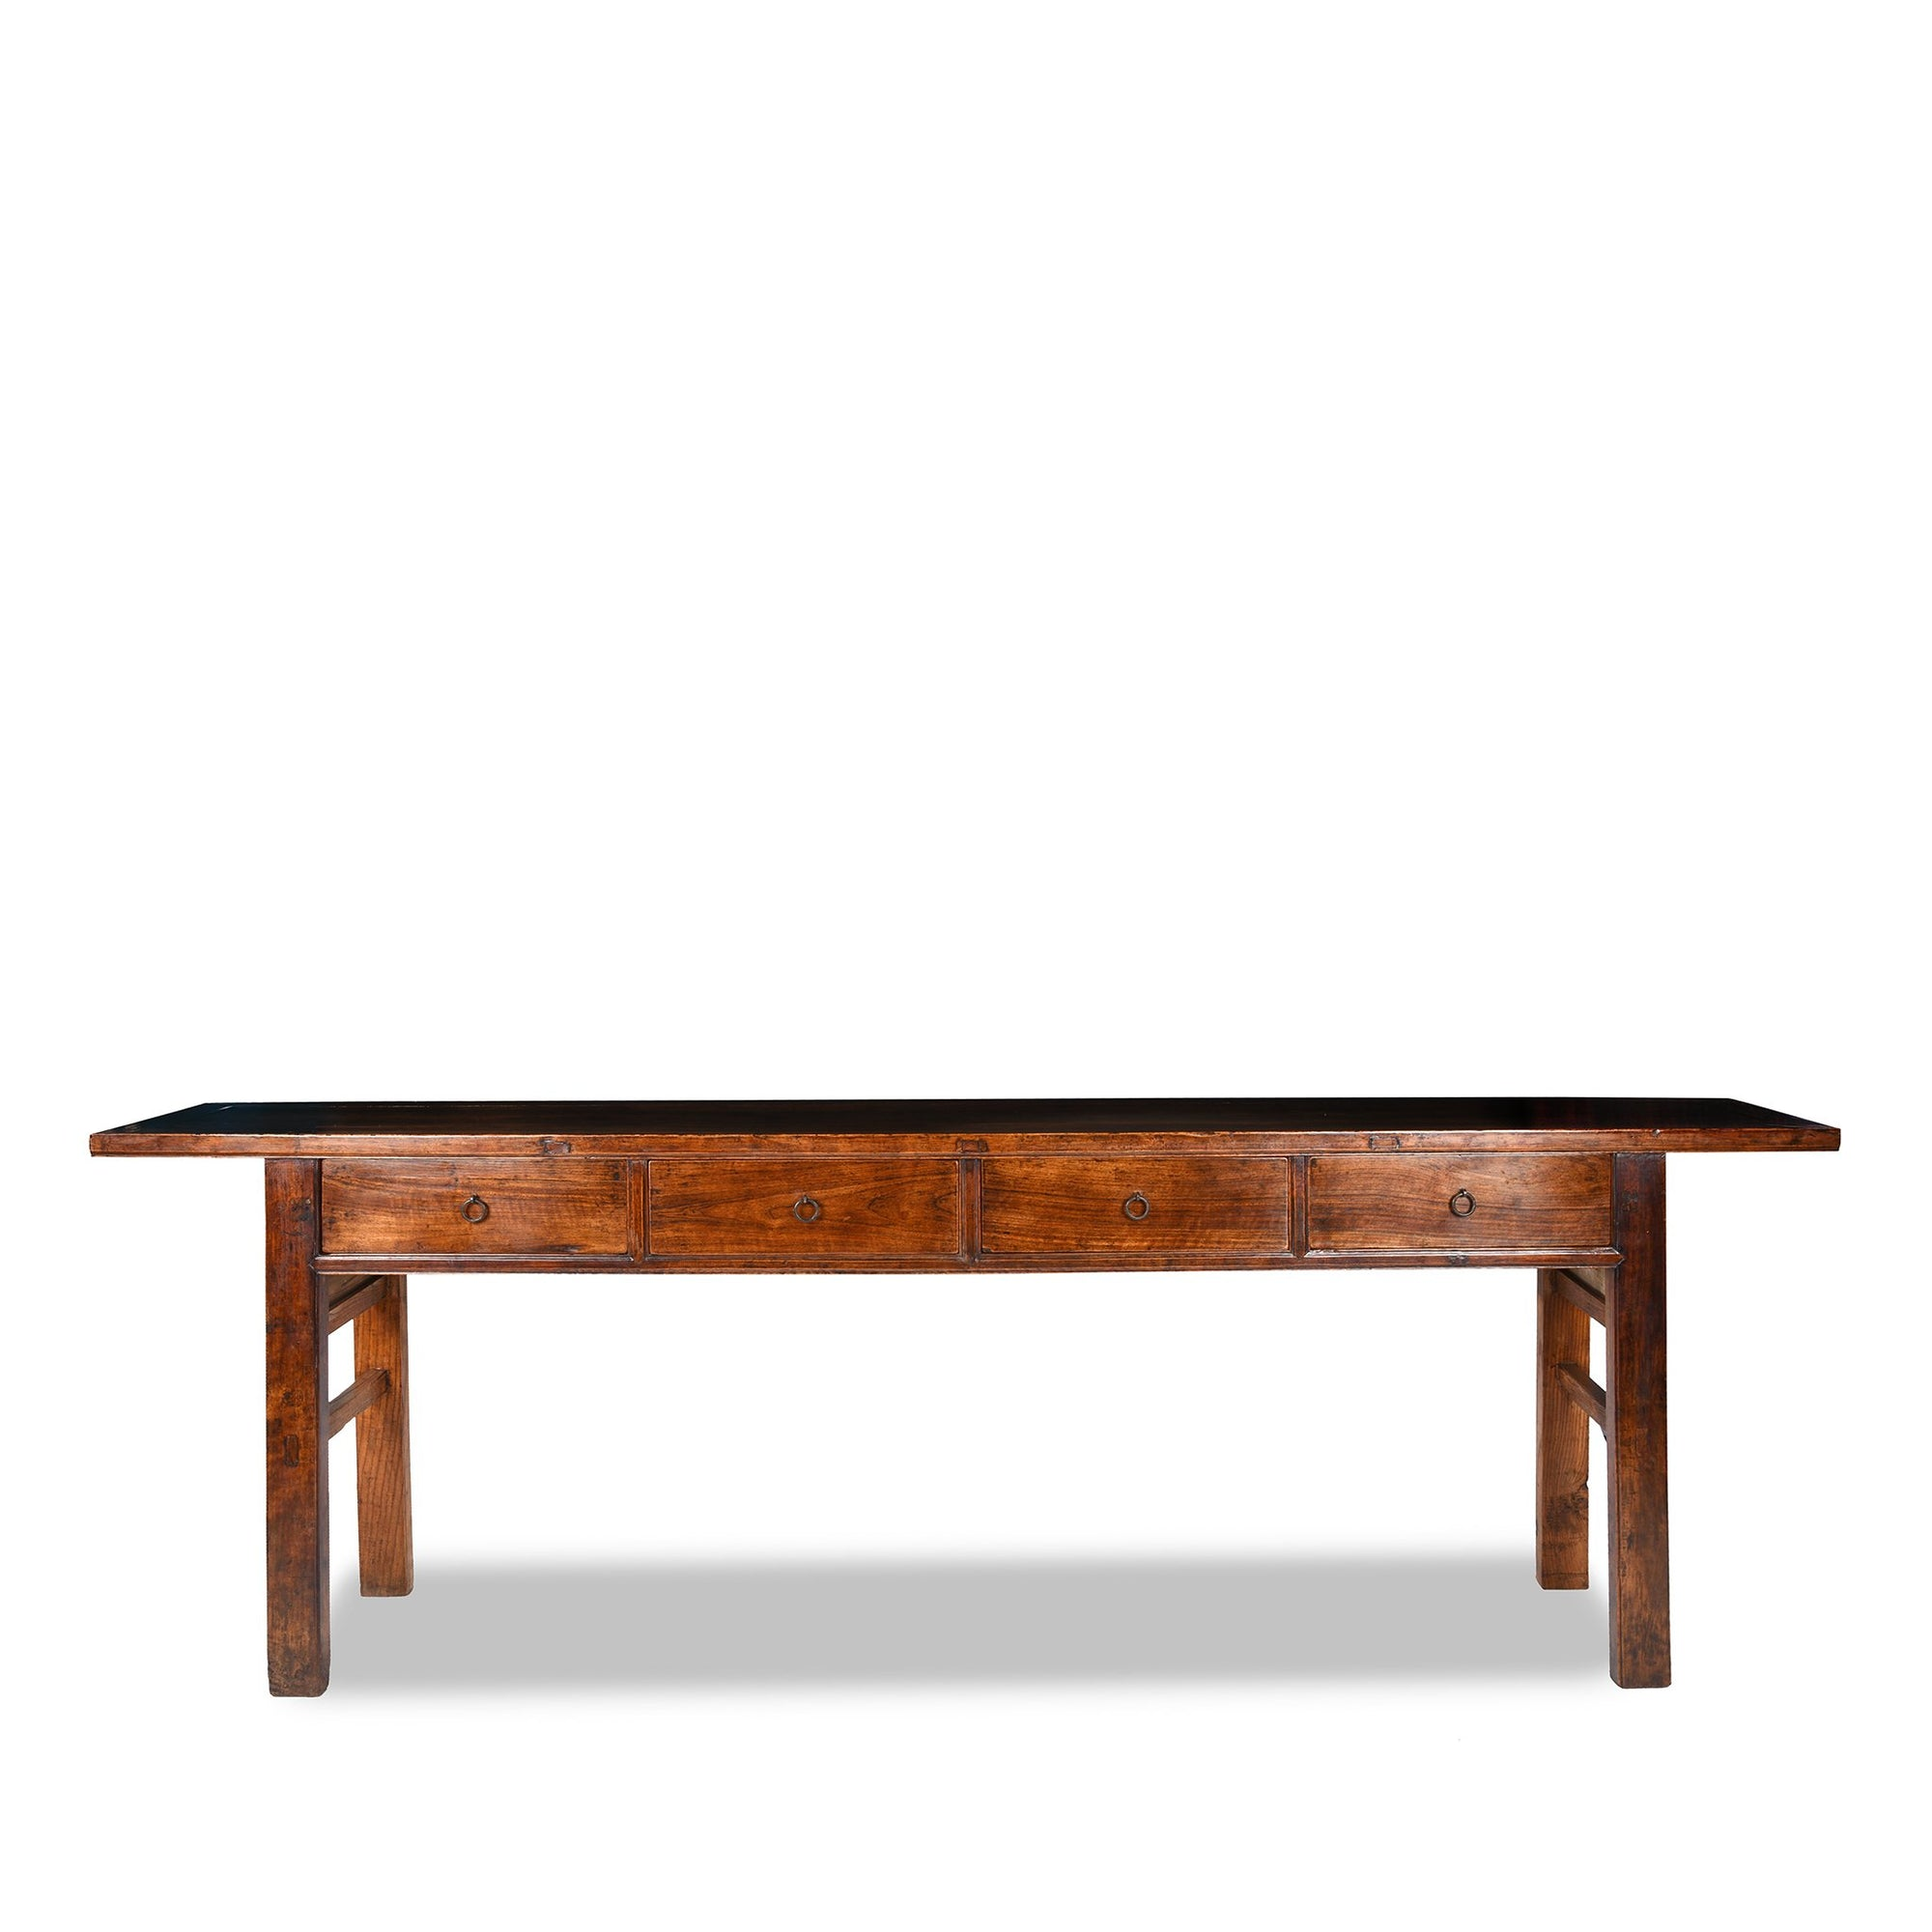 Antique walnut wood Chinese long altar table with 4 drawers from Shanxi province and beautiful patina | Indigo Antiques